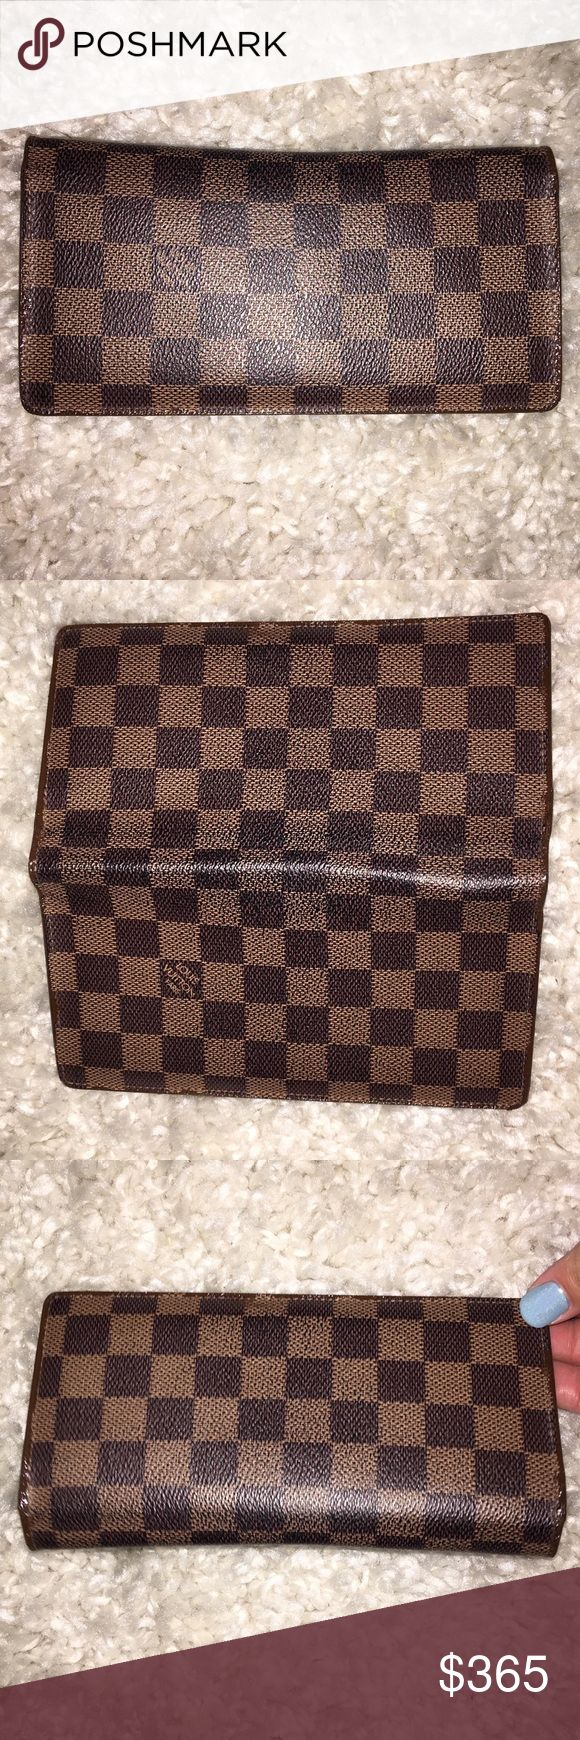 Authentic Louis Vuitton Damier Ebene Brazza Wallet Authentic Louis Vuitton Brazza Damier Ebene Bifold Wallet. DATE CODE: SP 4039 (September 2009) MADE IN FRANCE. 12 credit card , 1 ID , 3 long slot , zipper coin purse. Has some cracking around edges where wallet folds & LV wouldn't reglaze the edges so I used Edge Koat in brown to seal & prolong life. Date code & heat stamp in red is faded but still can see the actual stamp. No dust cover or box included. Louis Vuitton Bags Wallets